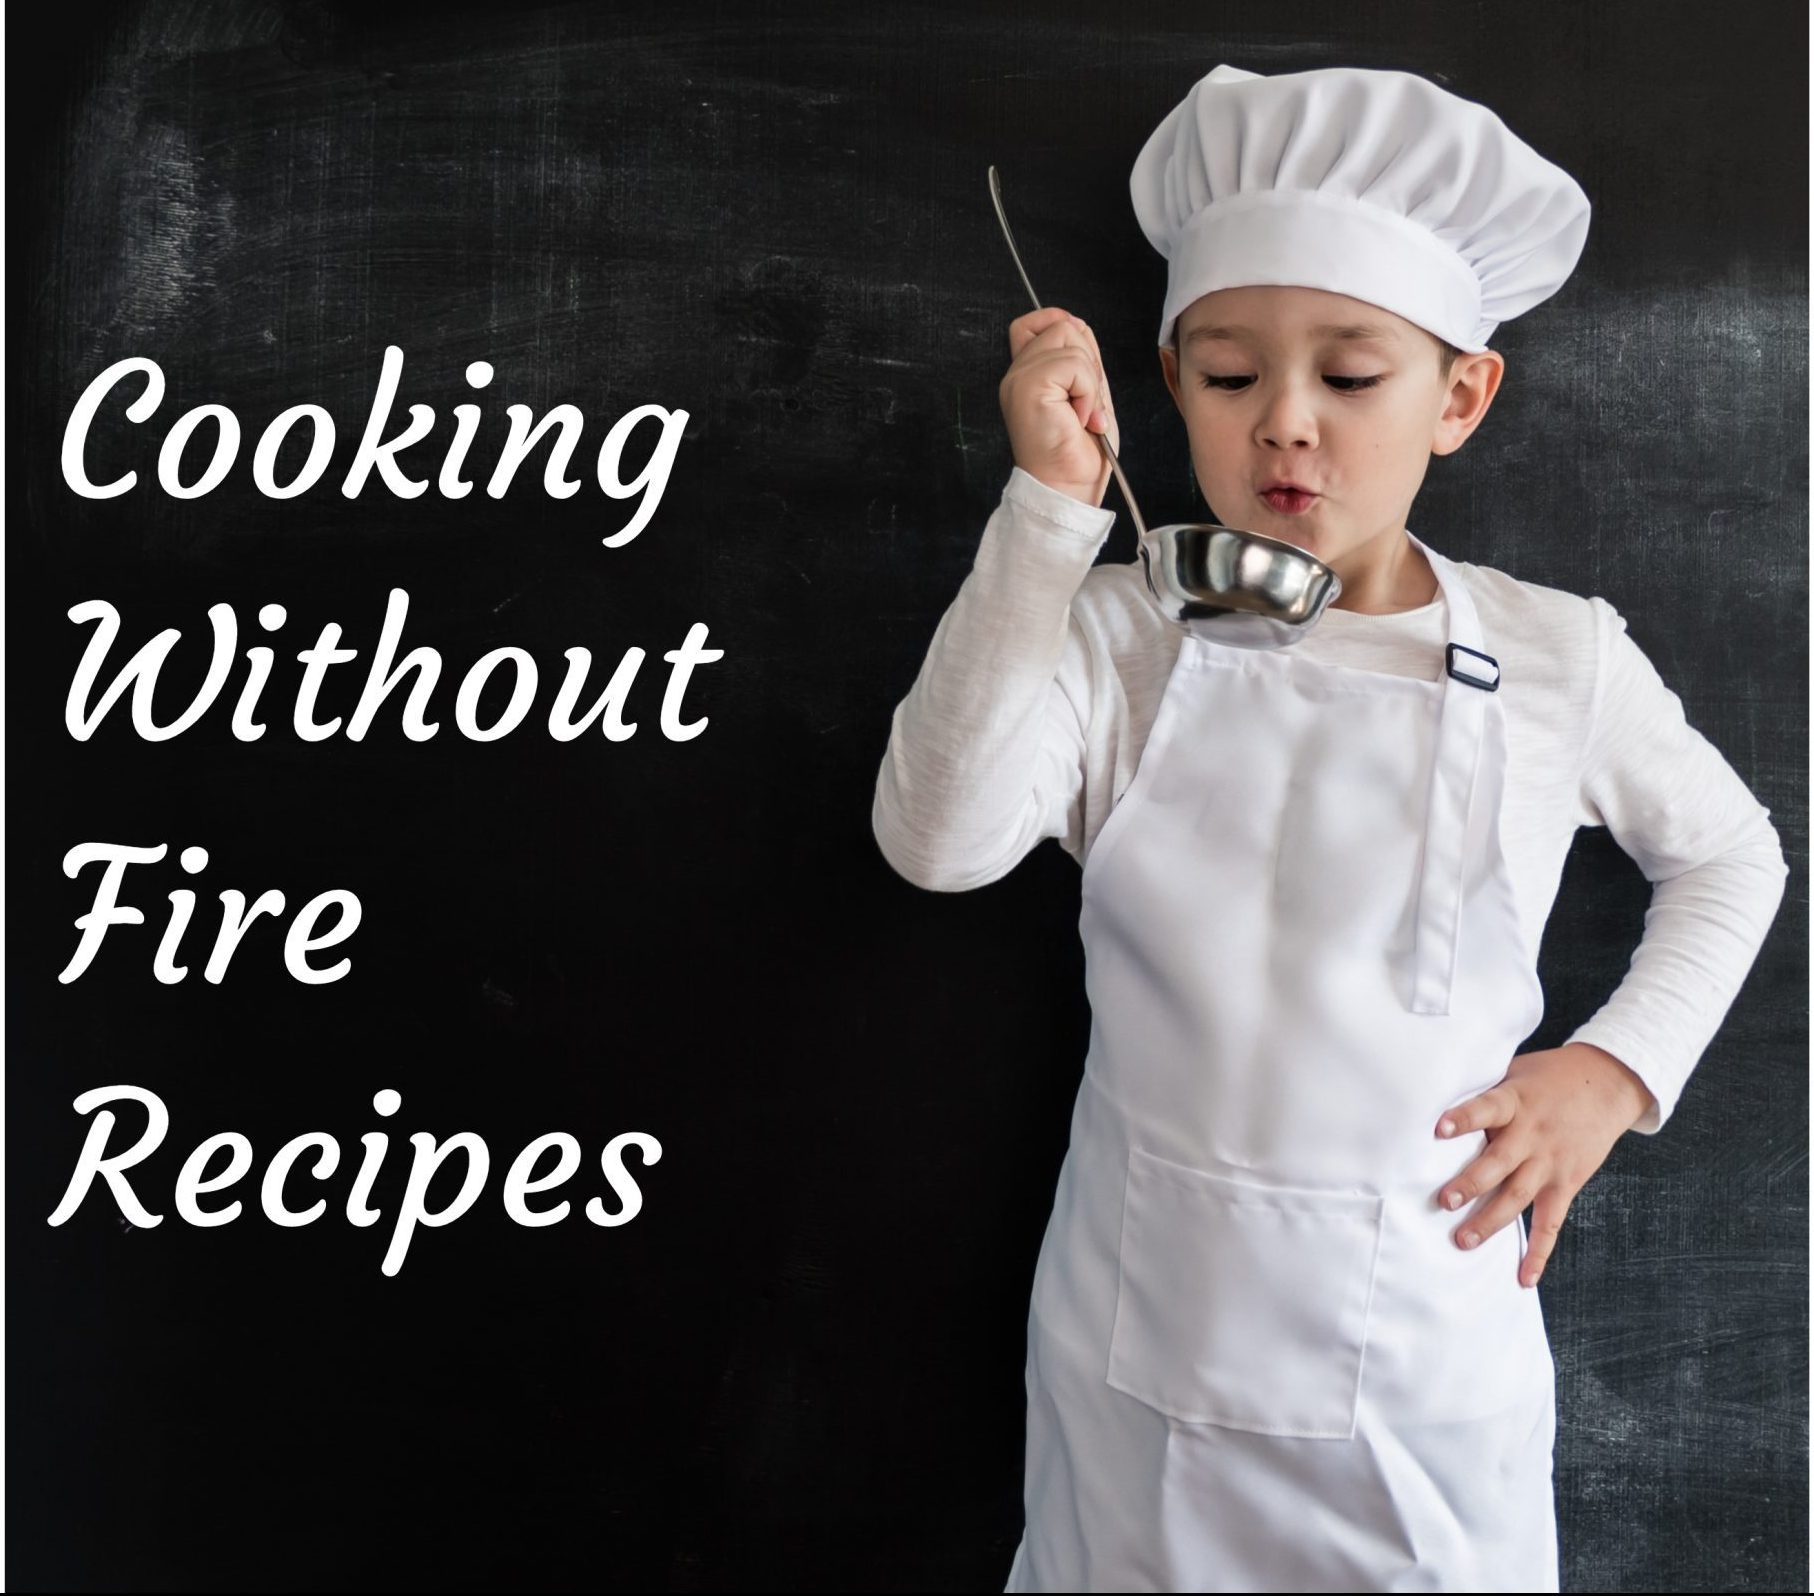 Cooking wihout fire banner